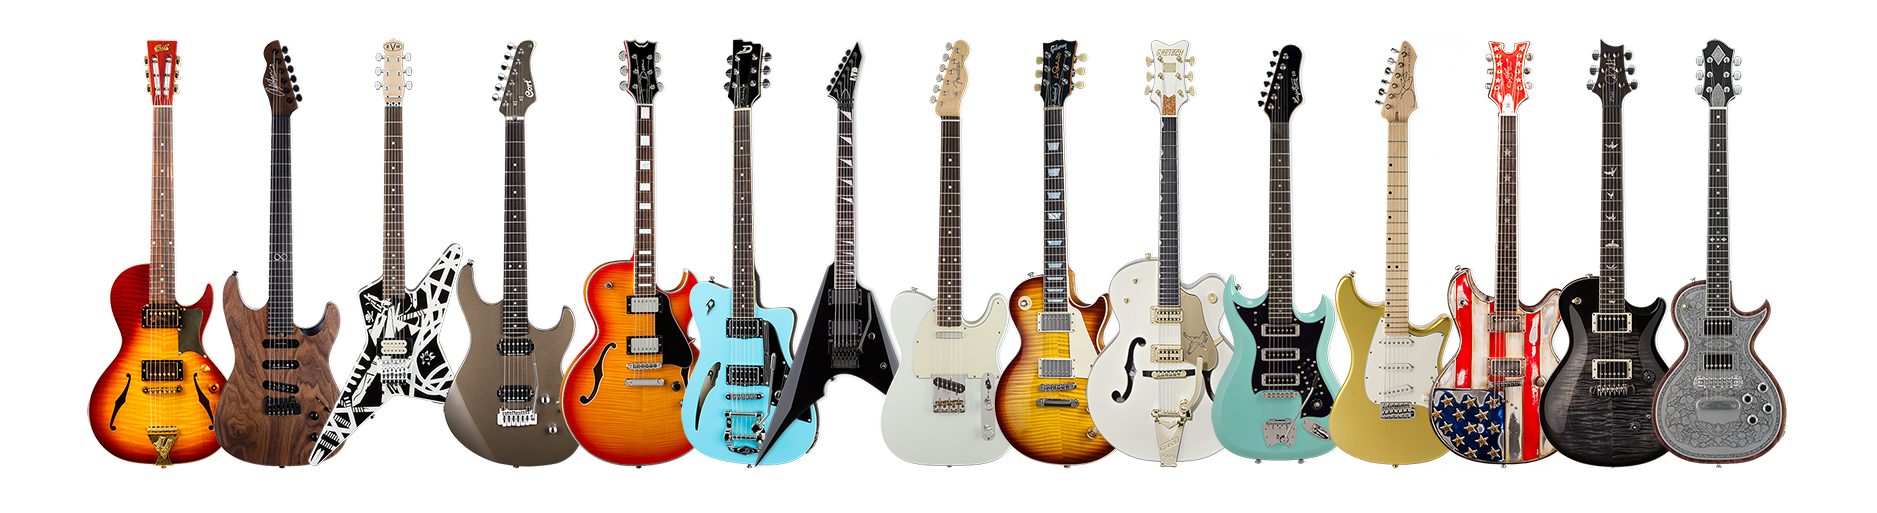 Guitar of the Year 2015